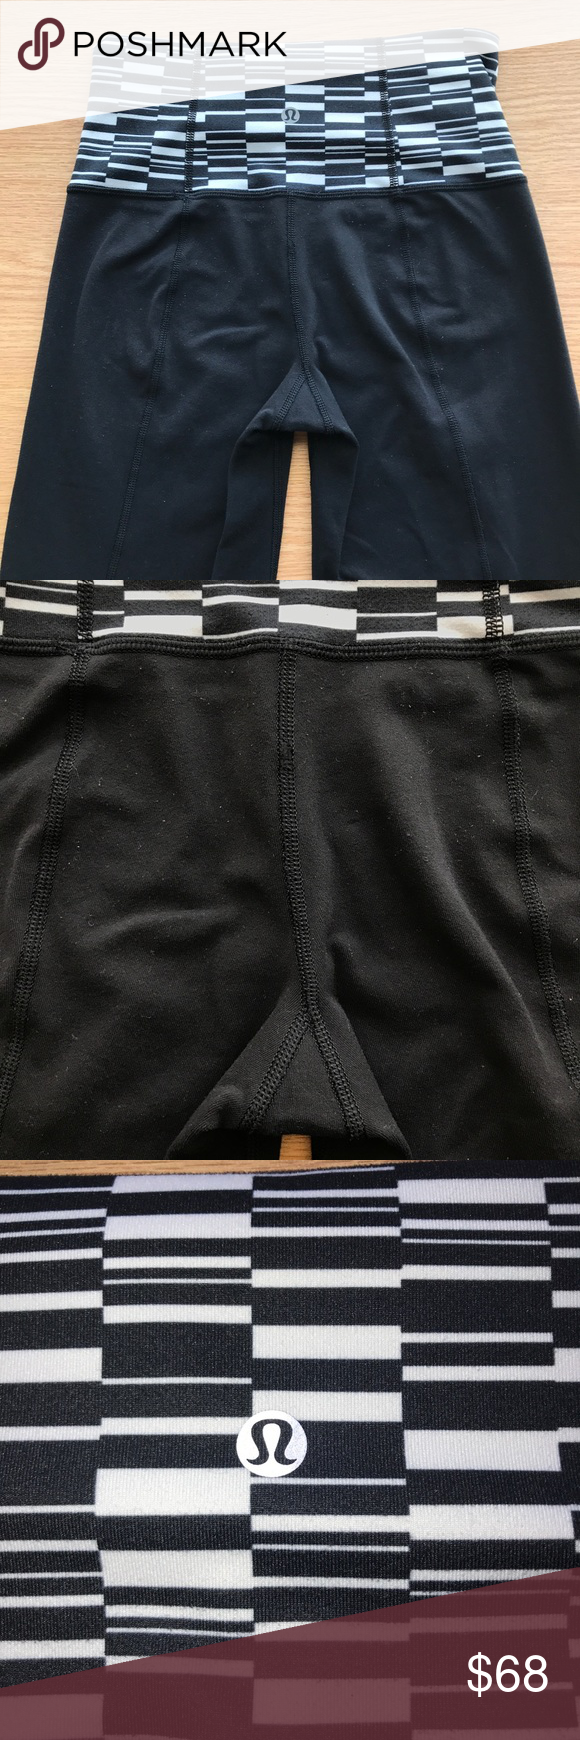 5e3679e1a Lululemon Groove Pant III Tall (Full-on Luon) Minor pilling on the back but  in amazing condition! - plain black with white and black geometric  waistband ...